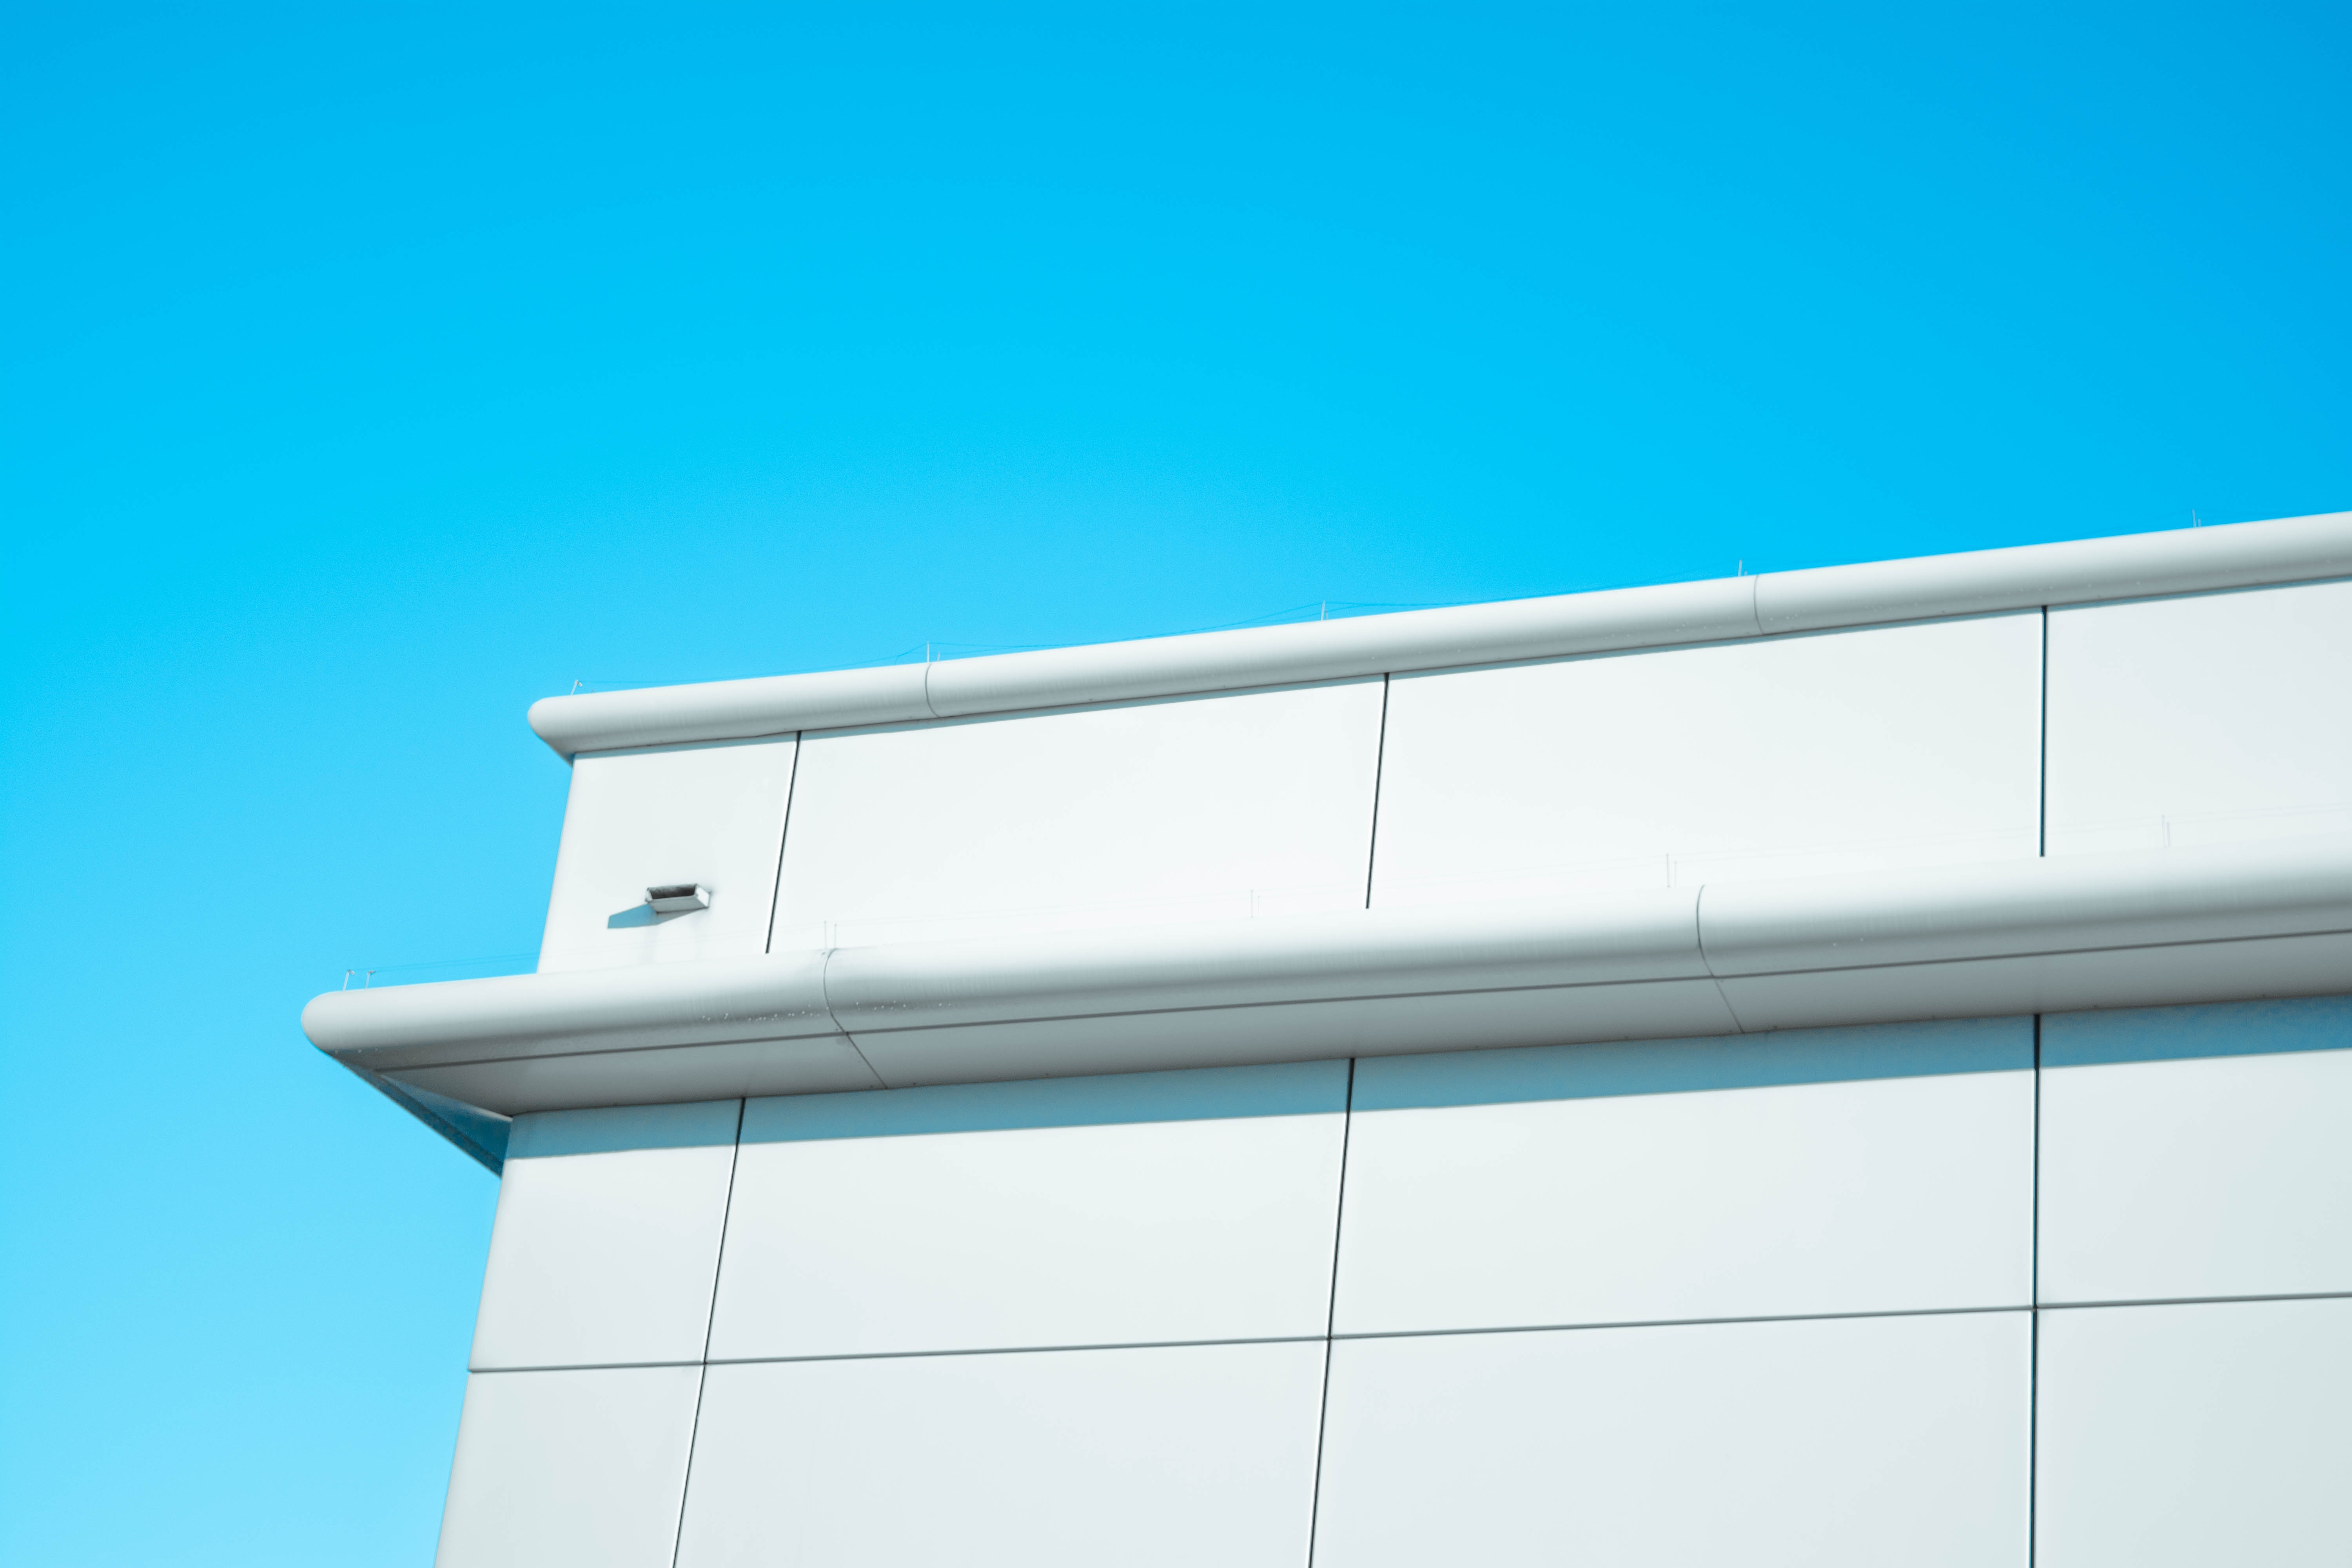 The top part of a white tiled facade with a ledge against a clear blue sky